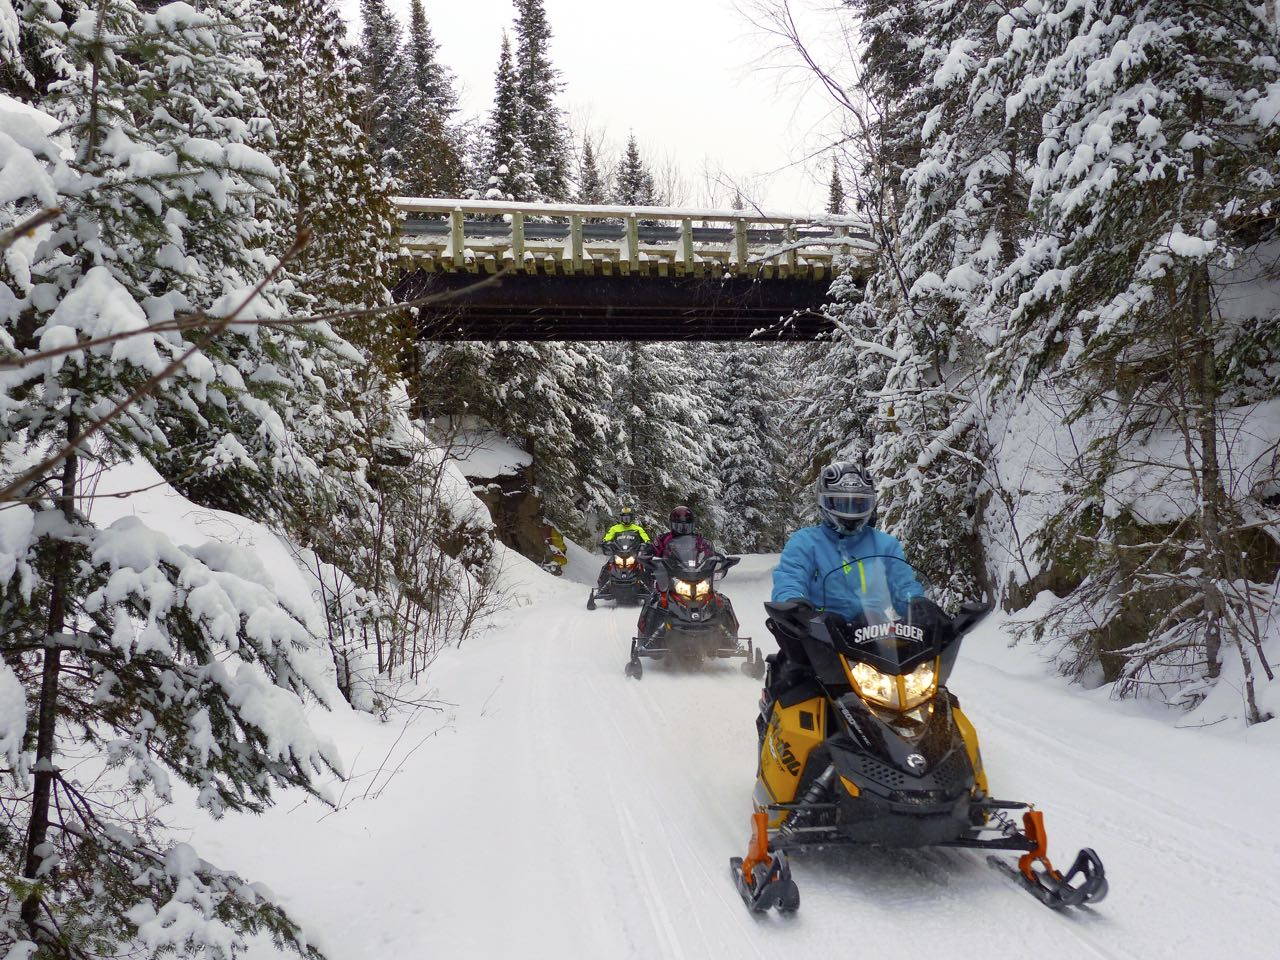 Ski doo riders passing under bridge in Quebec Laurentian Region